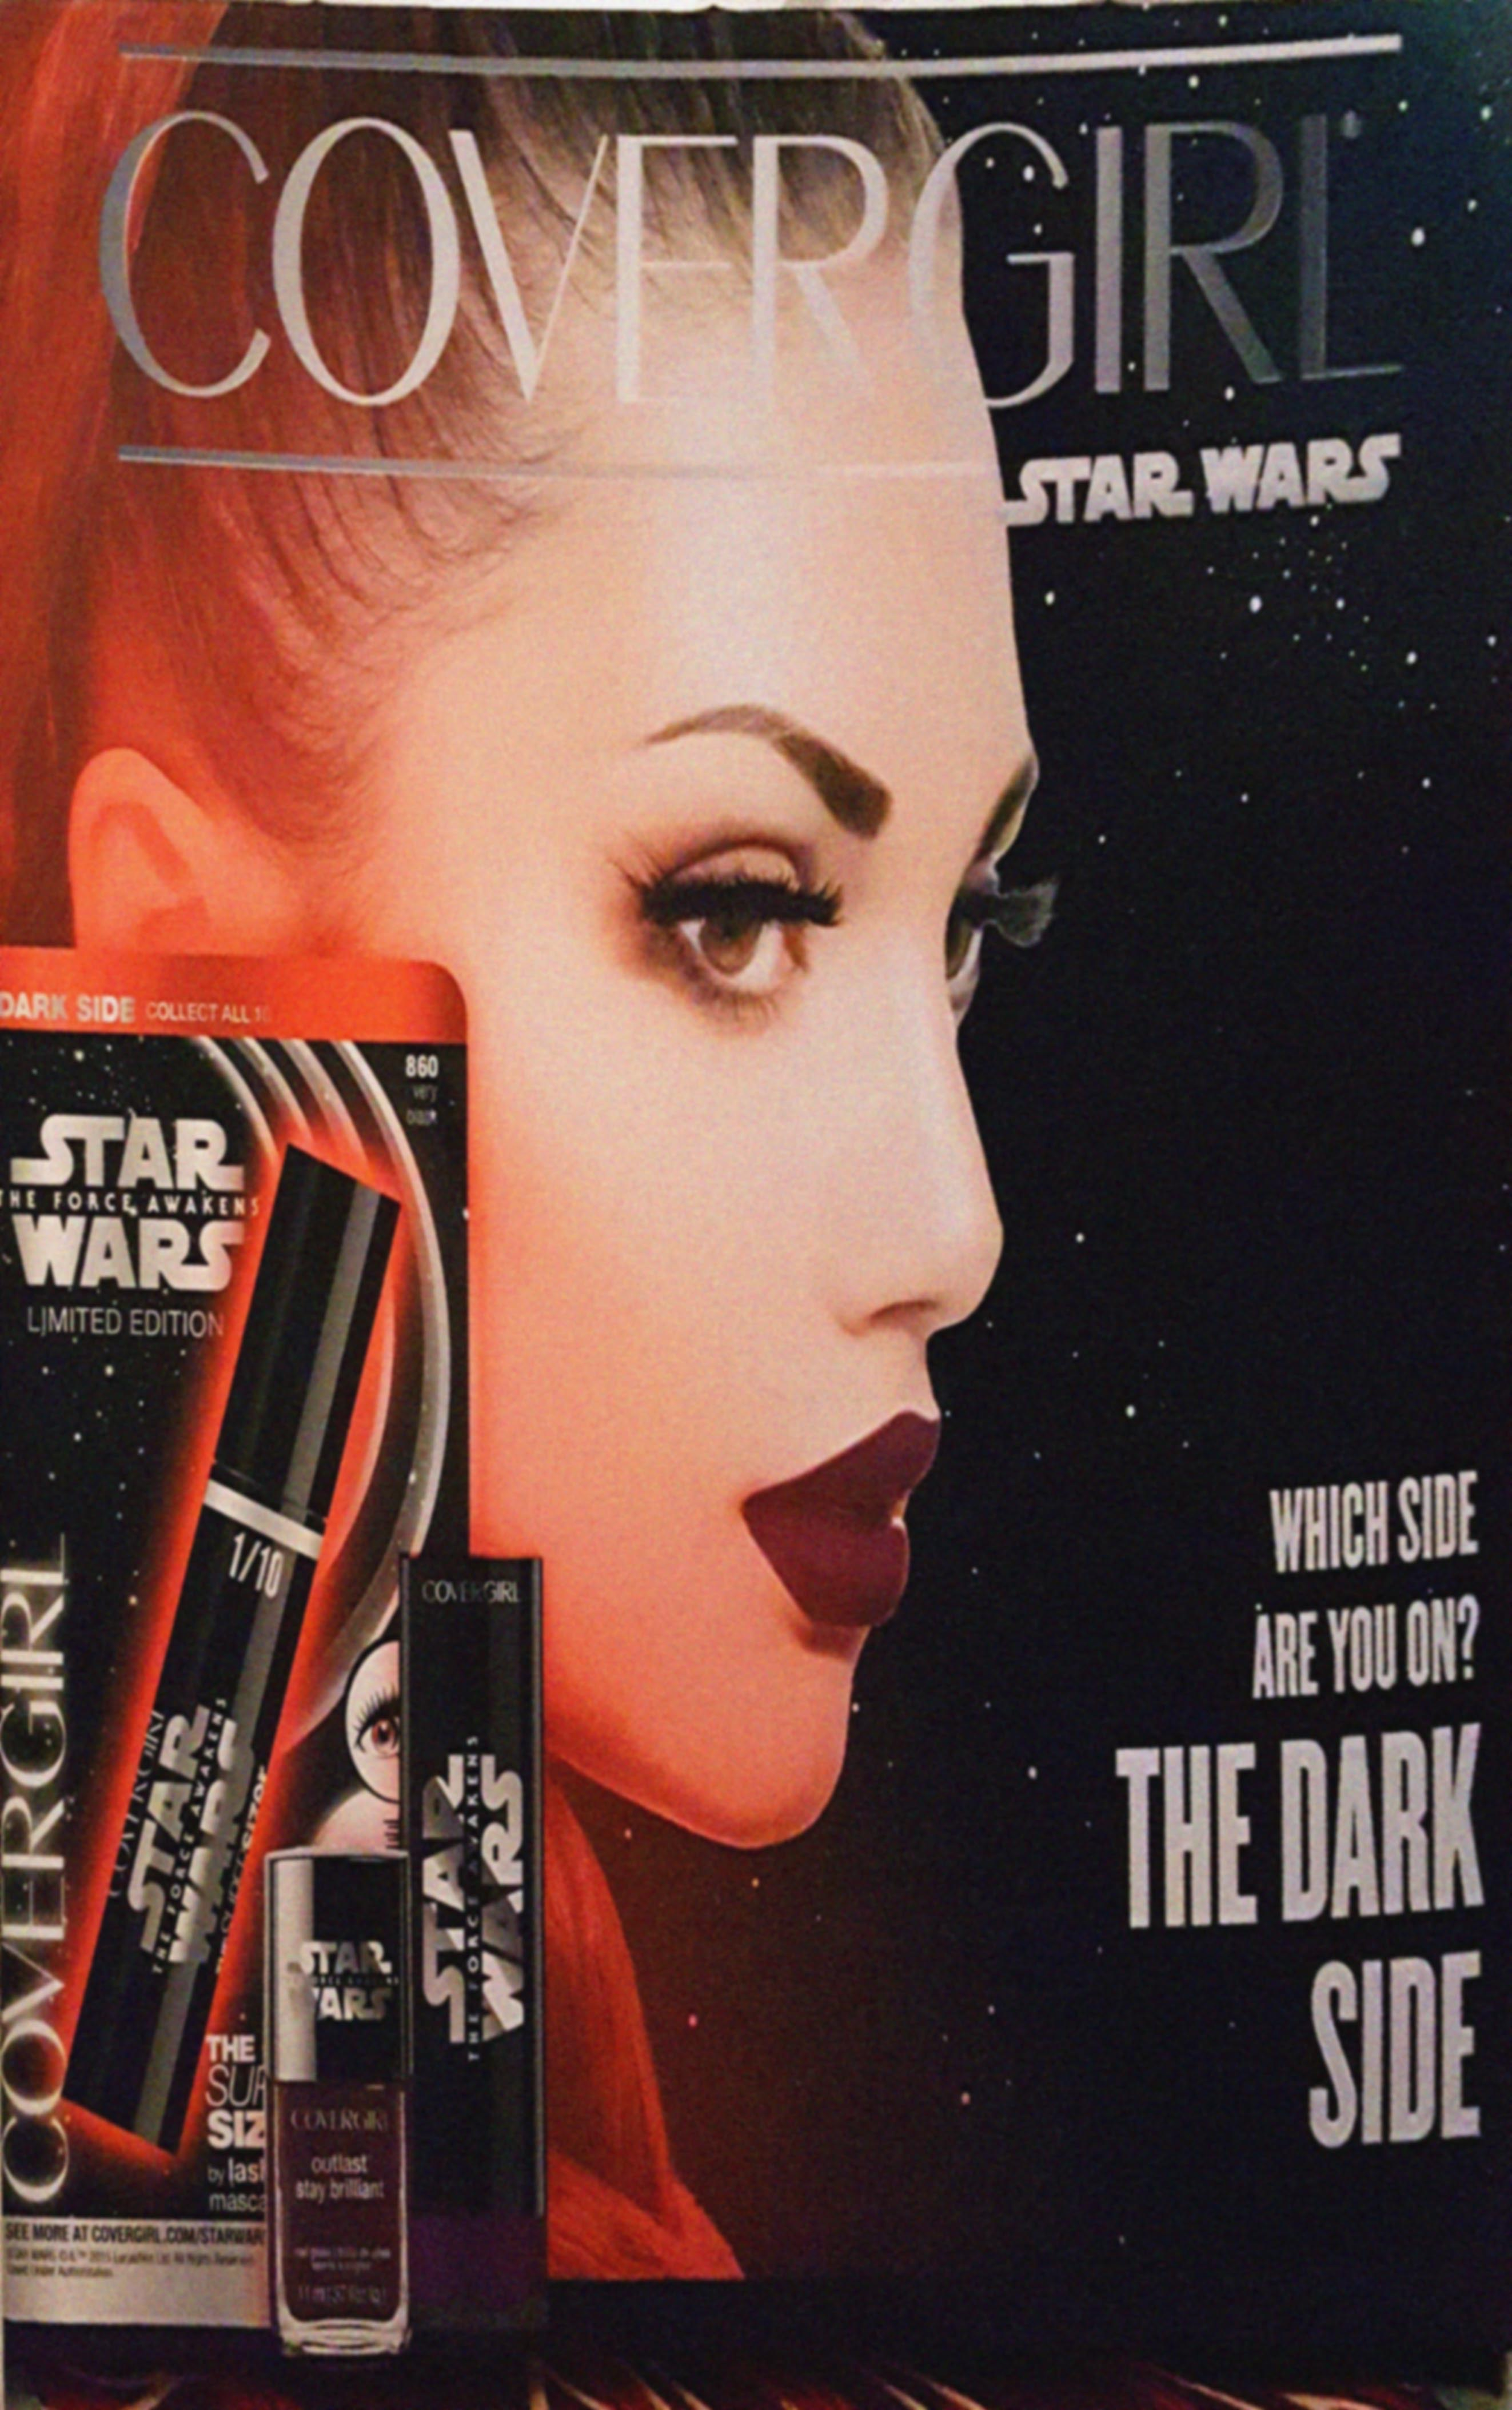 CoverGirl launches new Star Wars makeup line